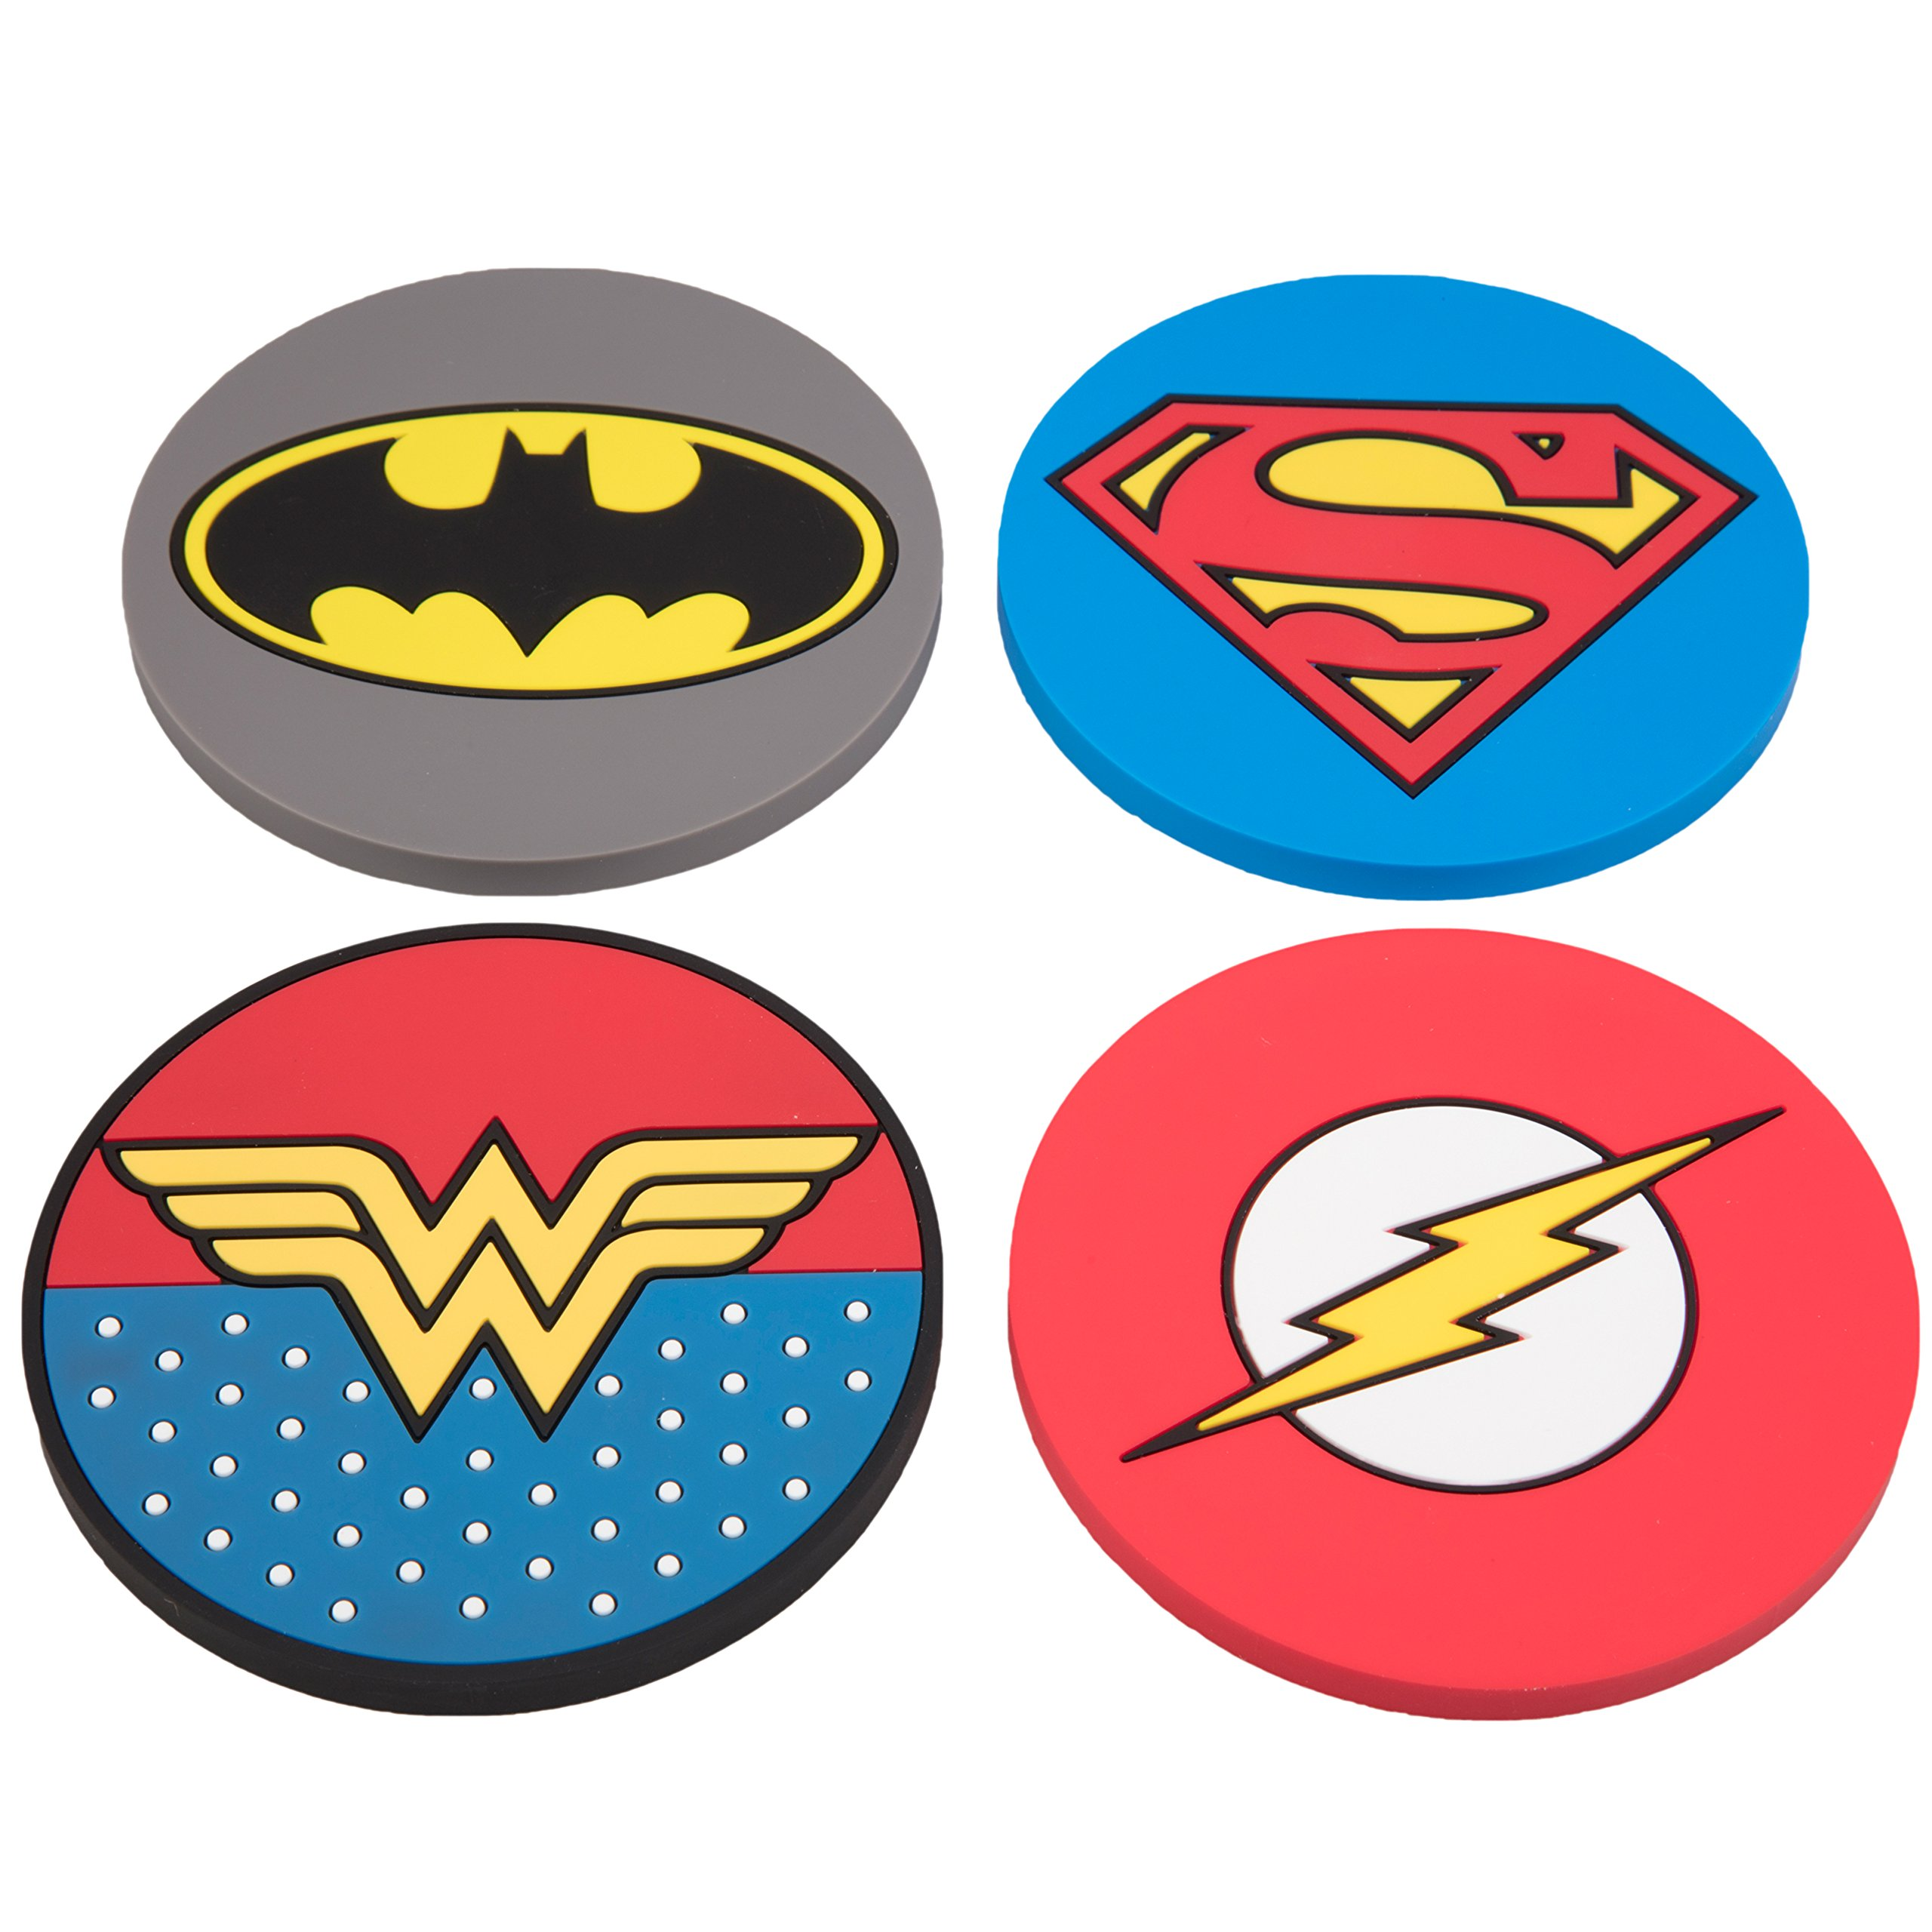 DC Justice League Super Hero Coaster Set - Batman, Superman, Wonder Woman, The Flash - Set of 4, PVC